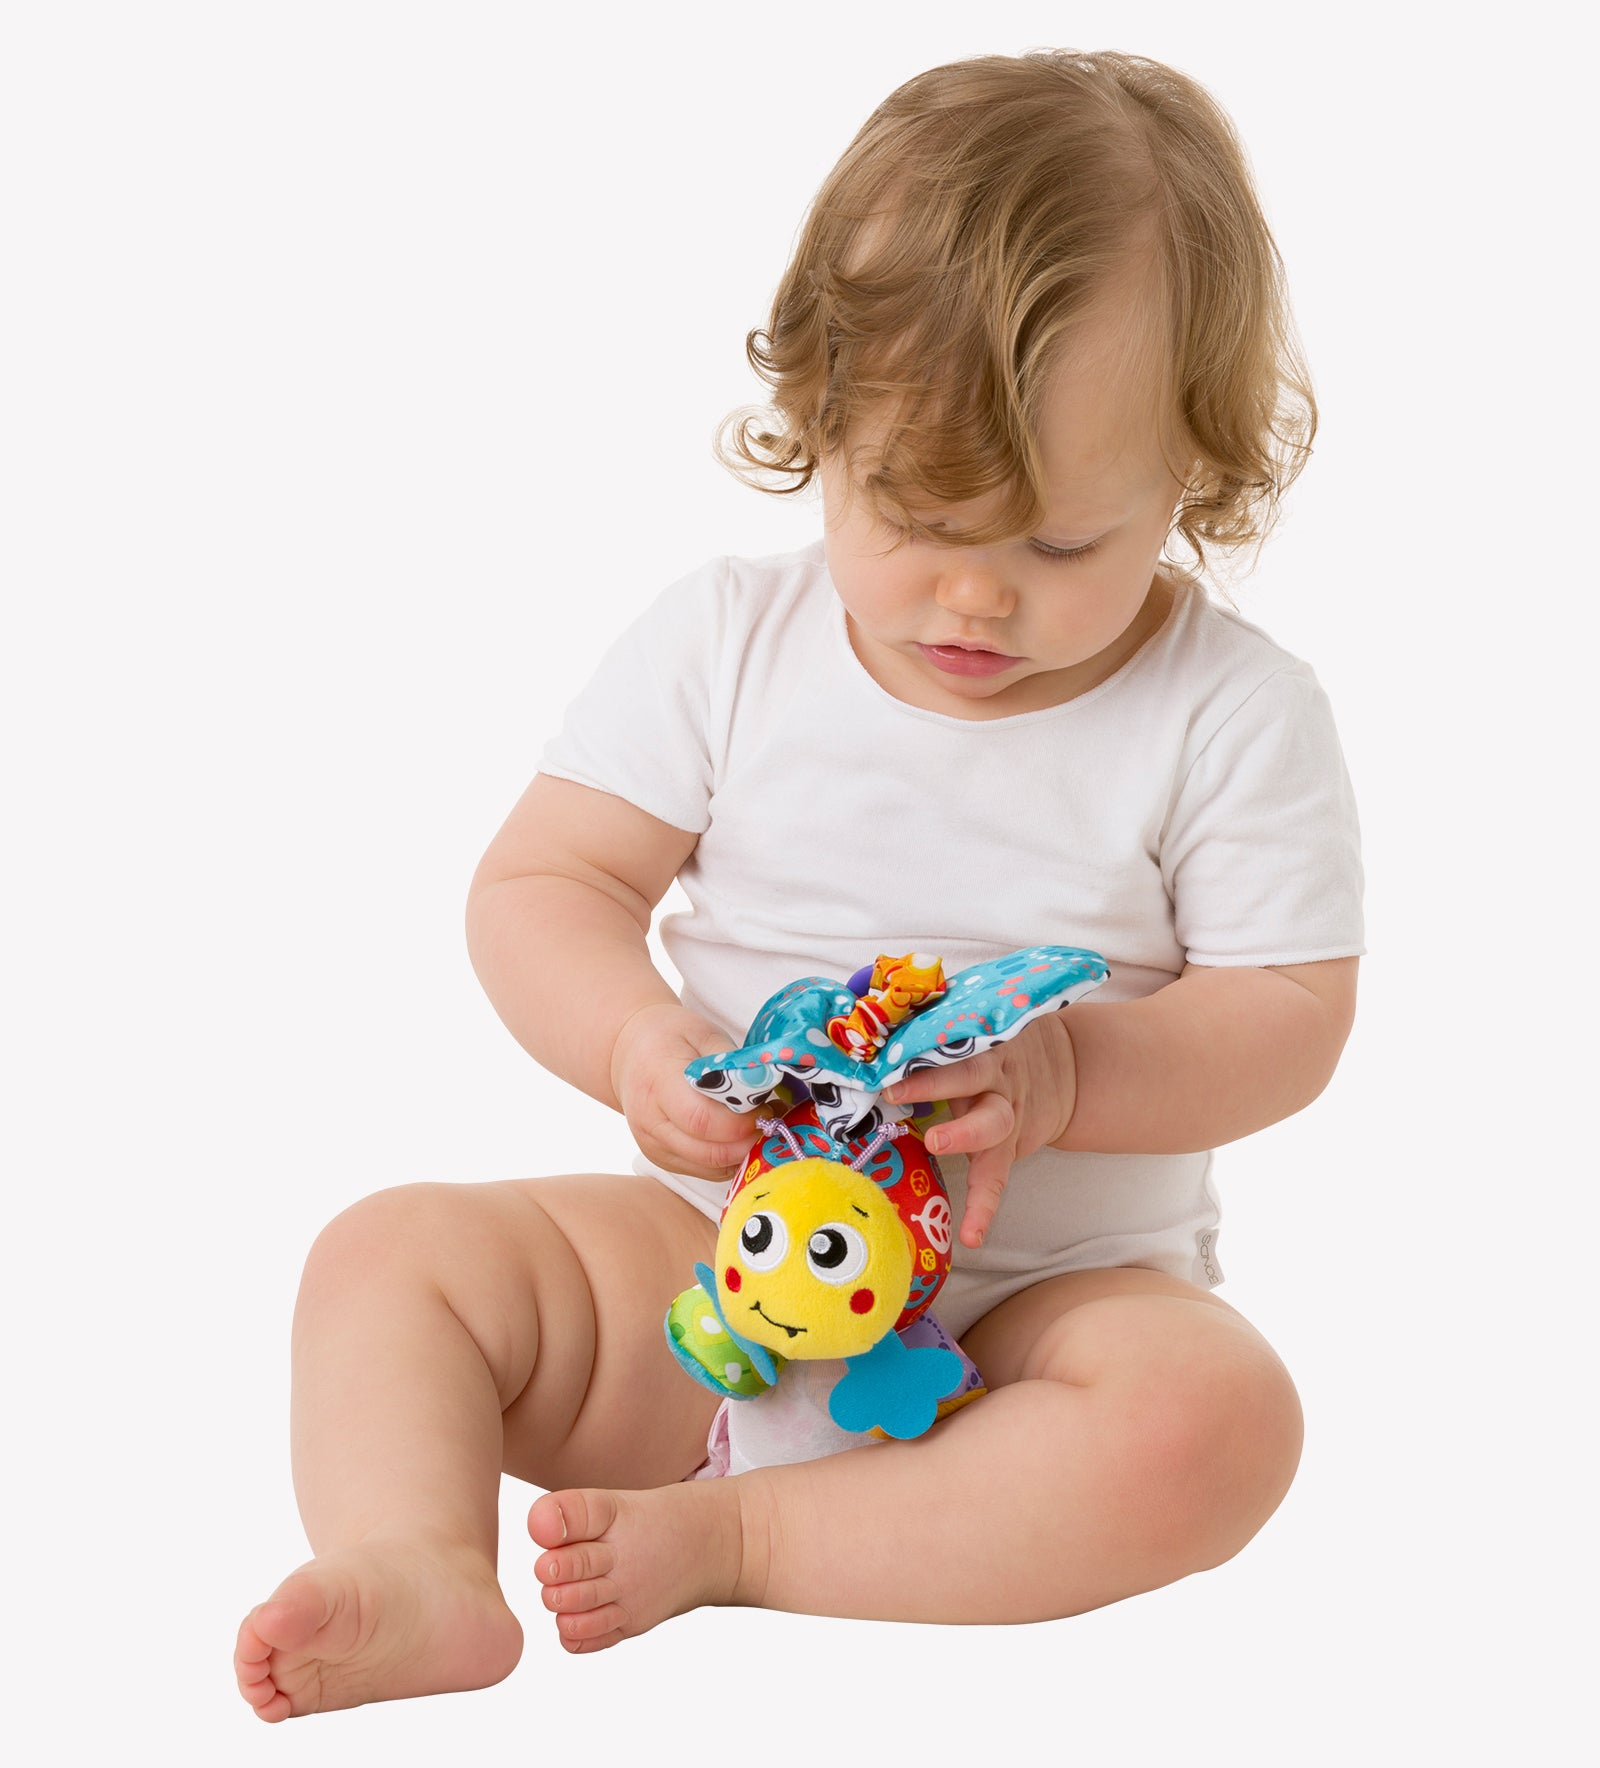 A toddler boy is playing with his Playgro Plush toy mover bee in his lap